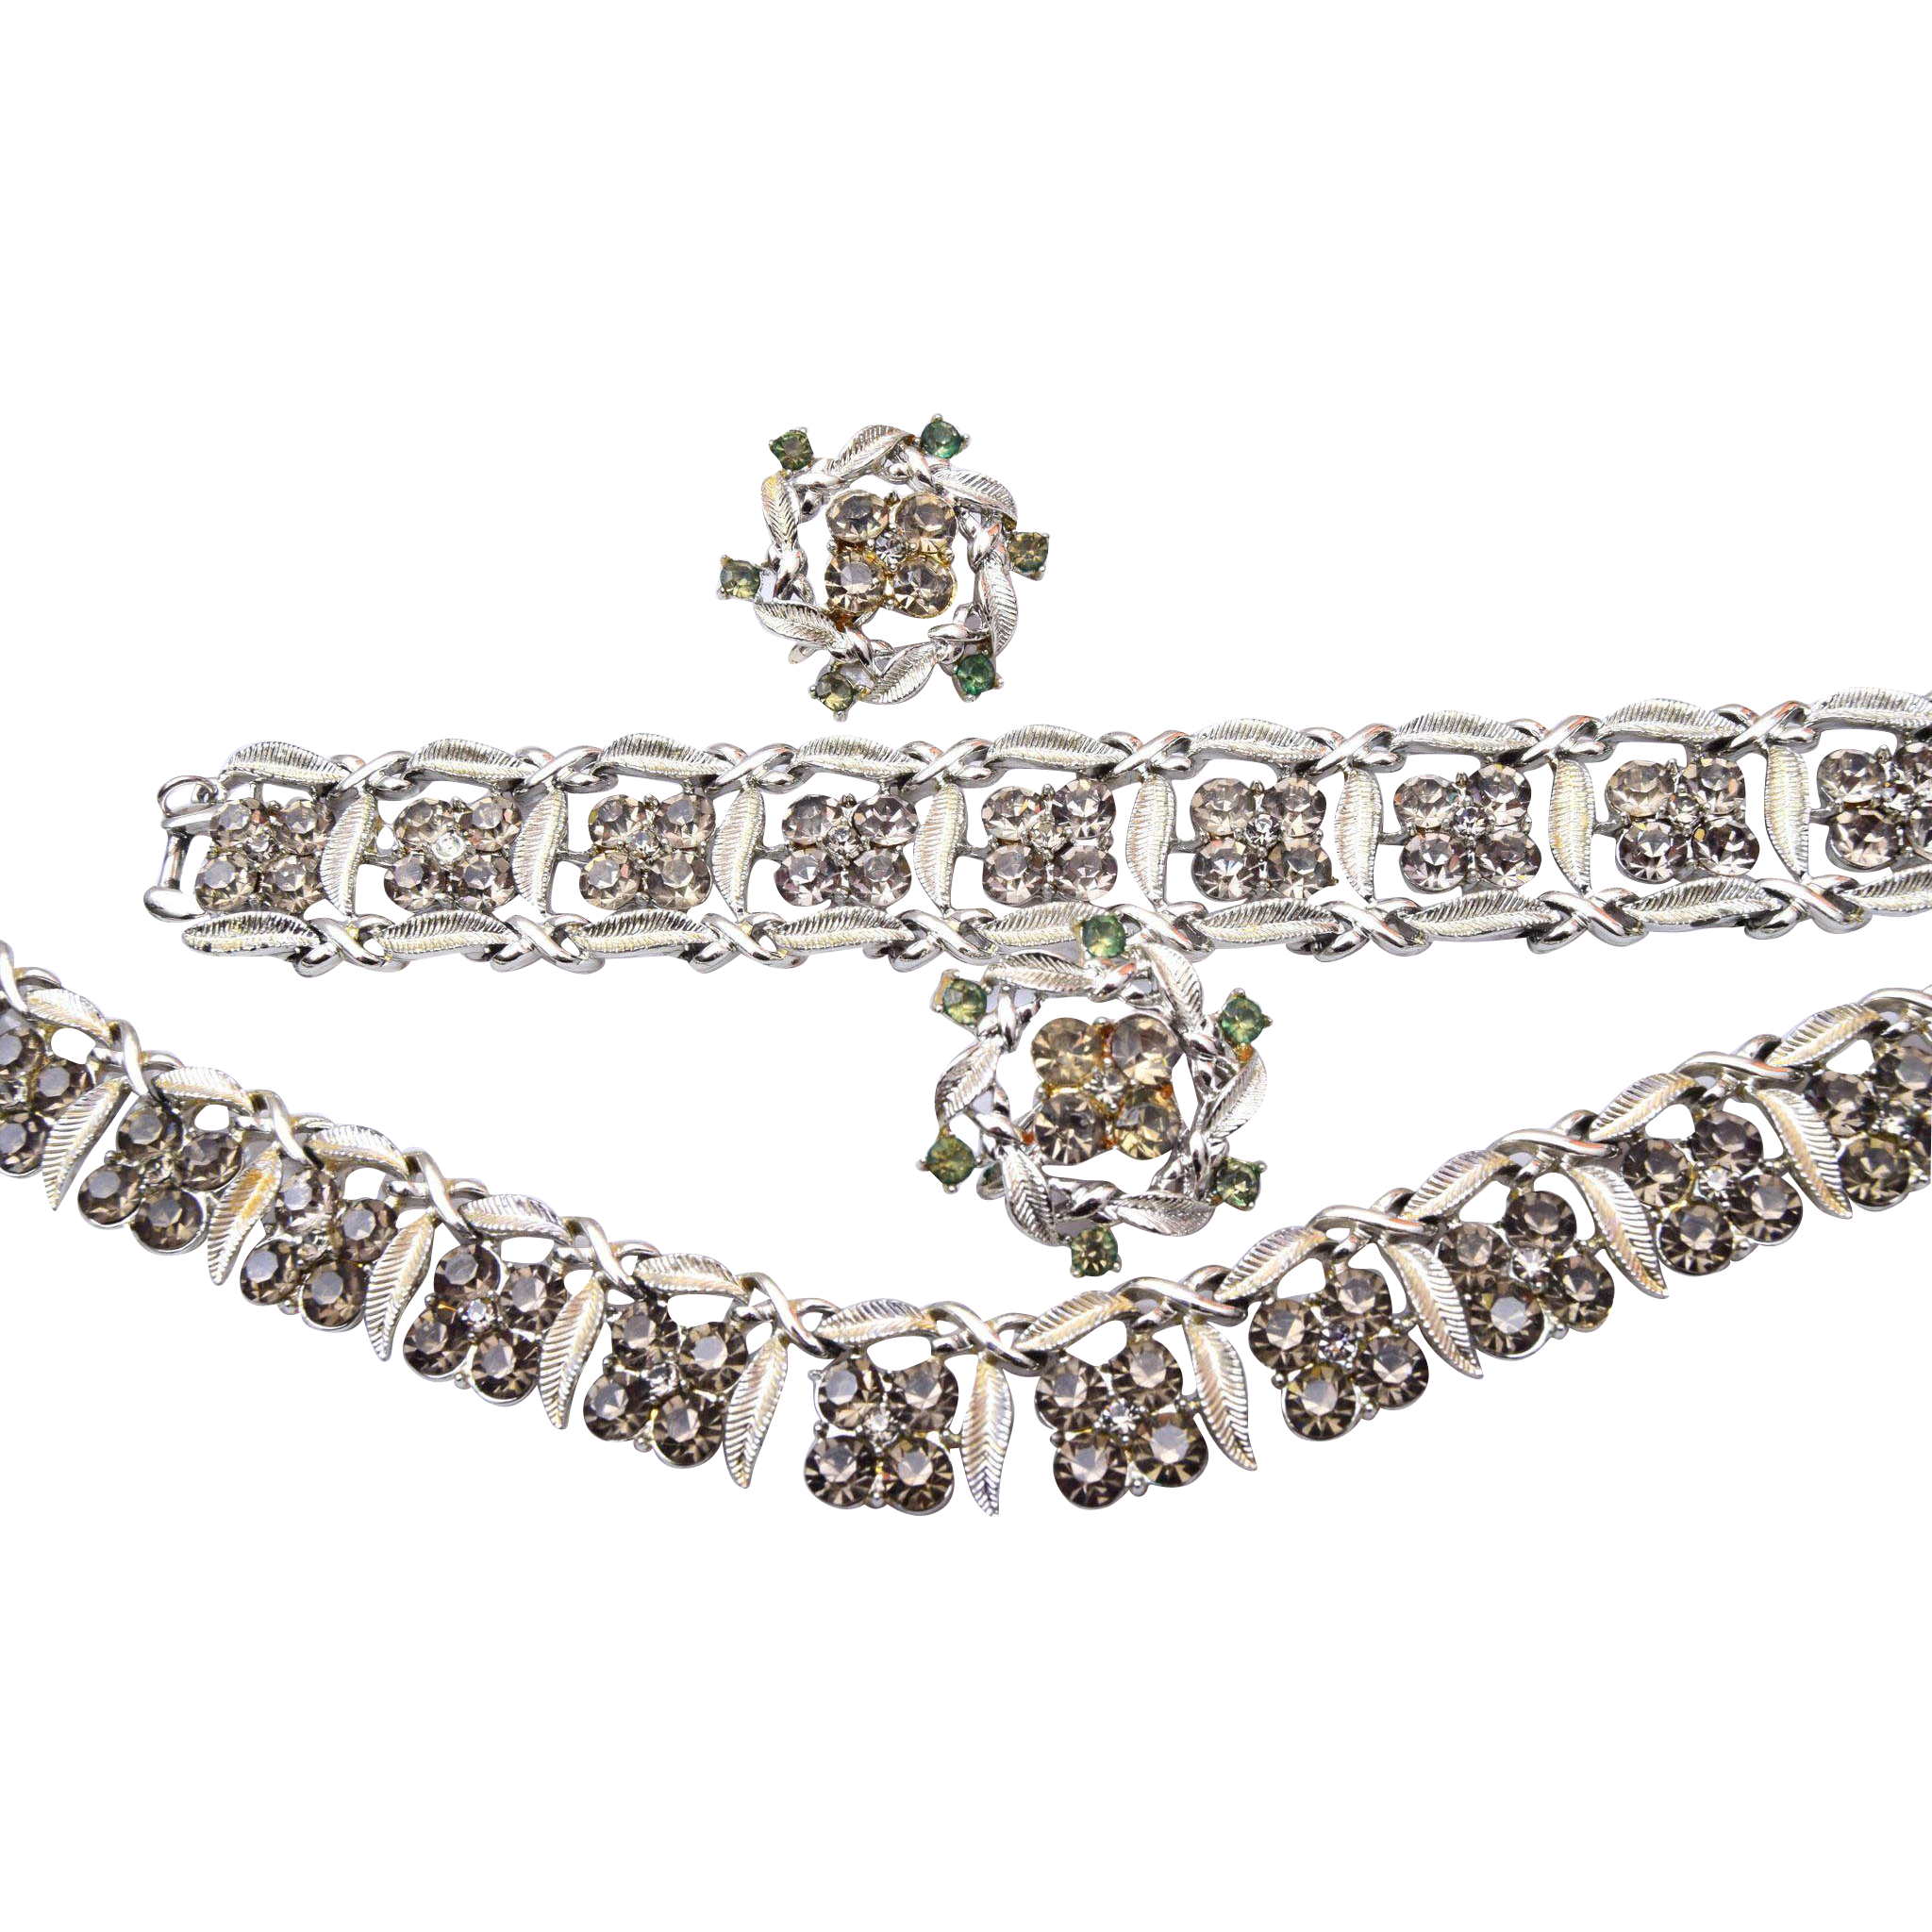 Coro Black Diamond Rhinestone Necklace, Bracelet and Earring Set